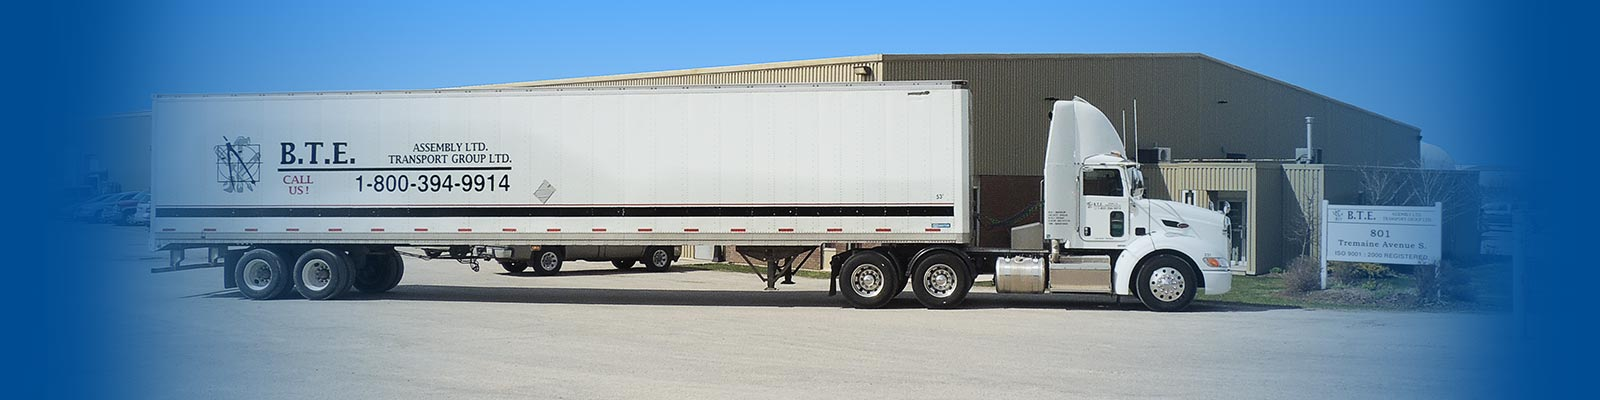 390bd29b320 Servicing business locally to the 401 corridor | BTE Transport Group Ltd.